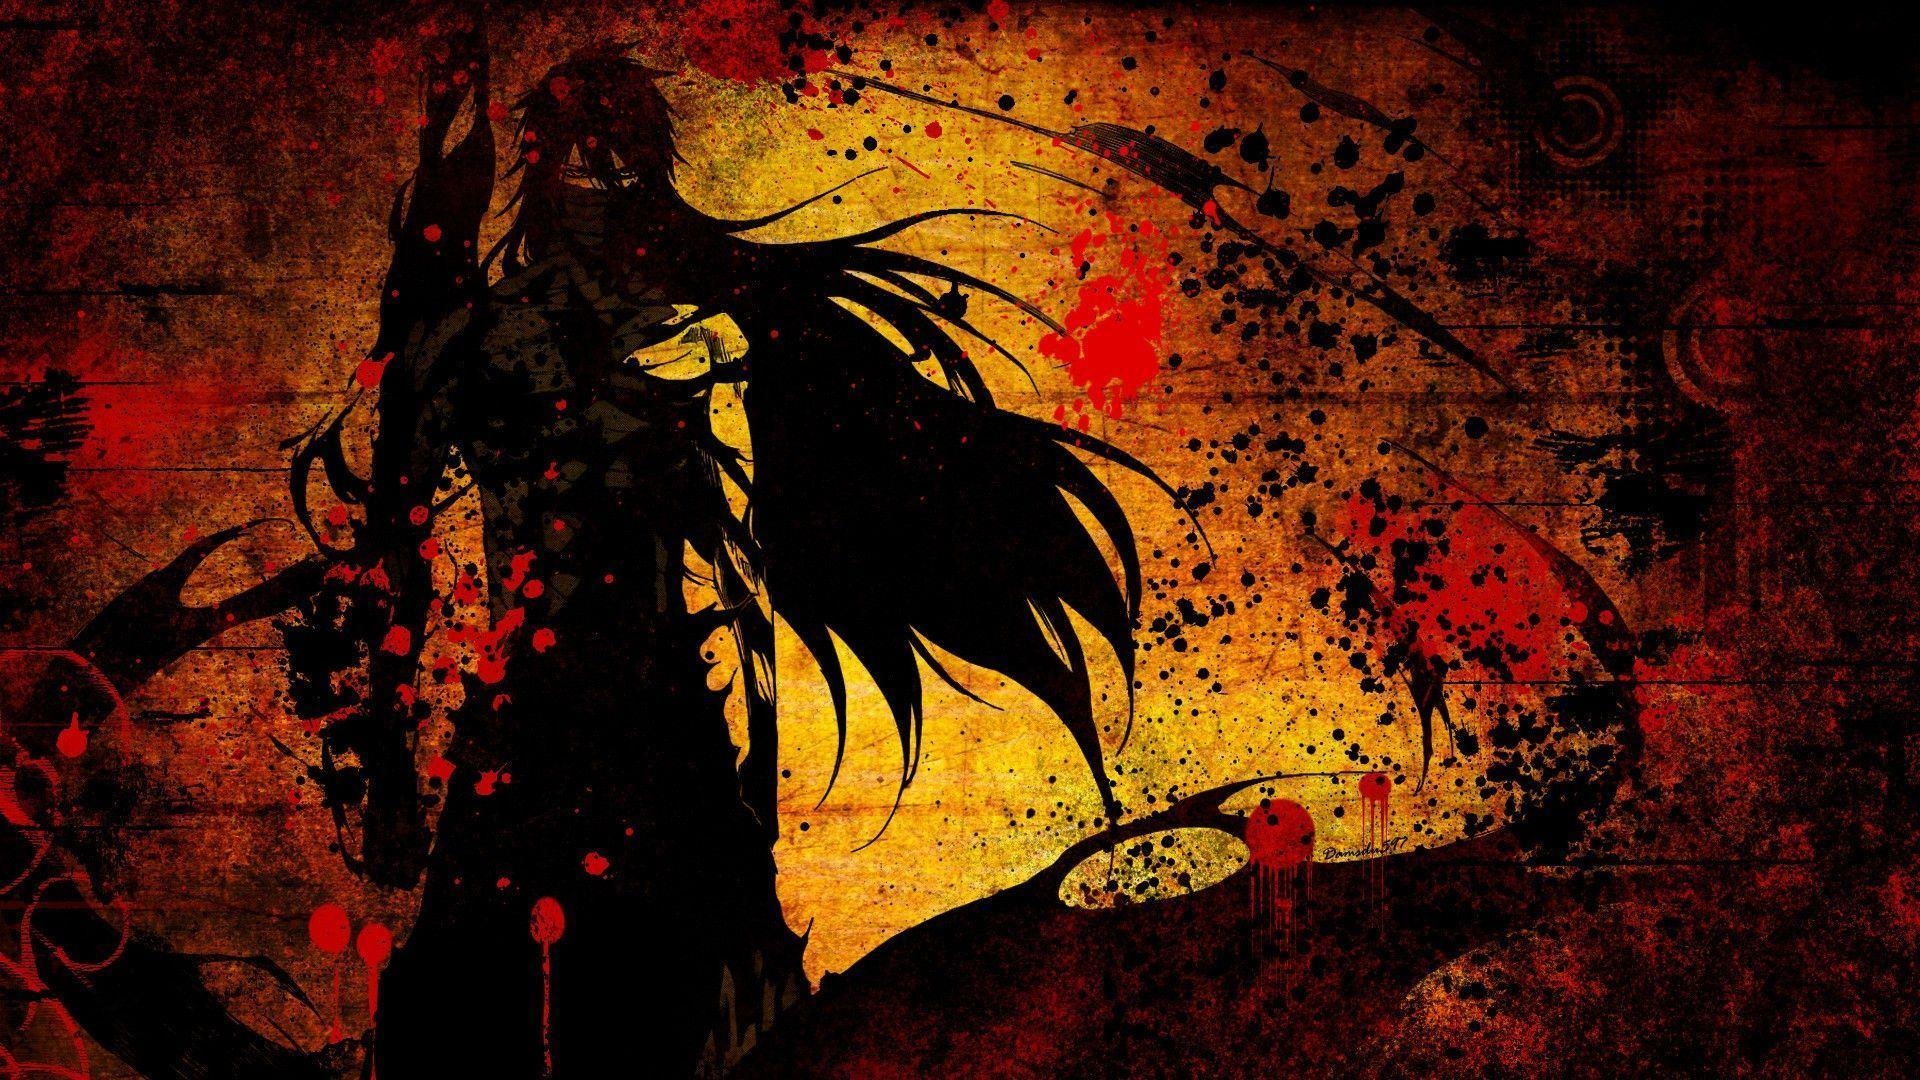 bleach wallpaper 1920 x 1080 - photo #45